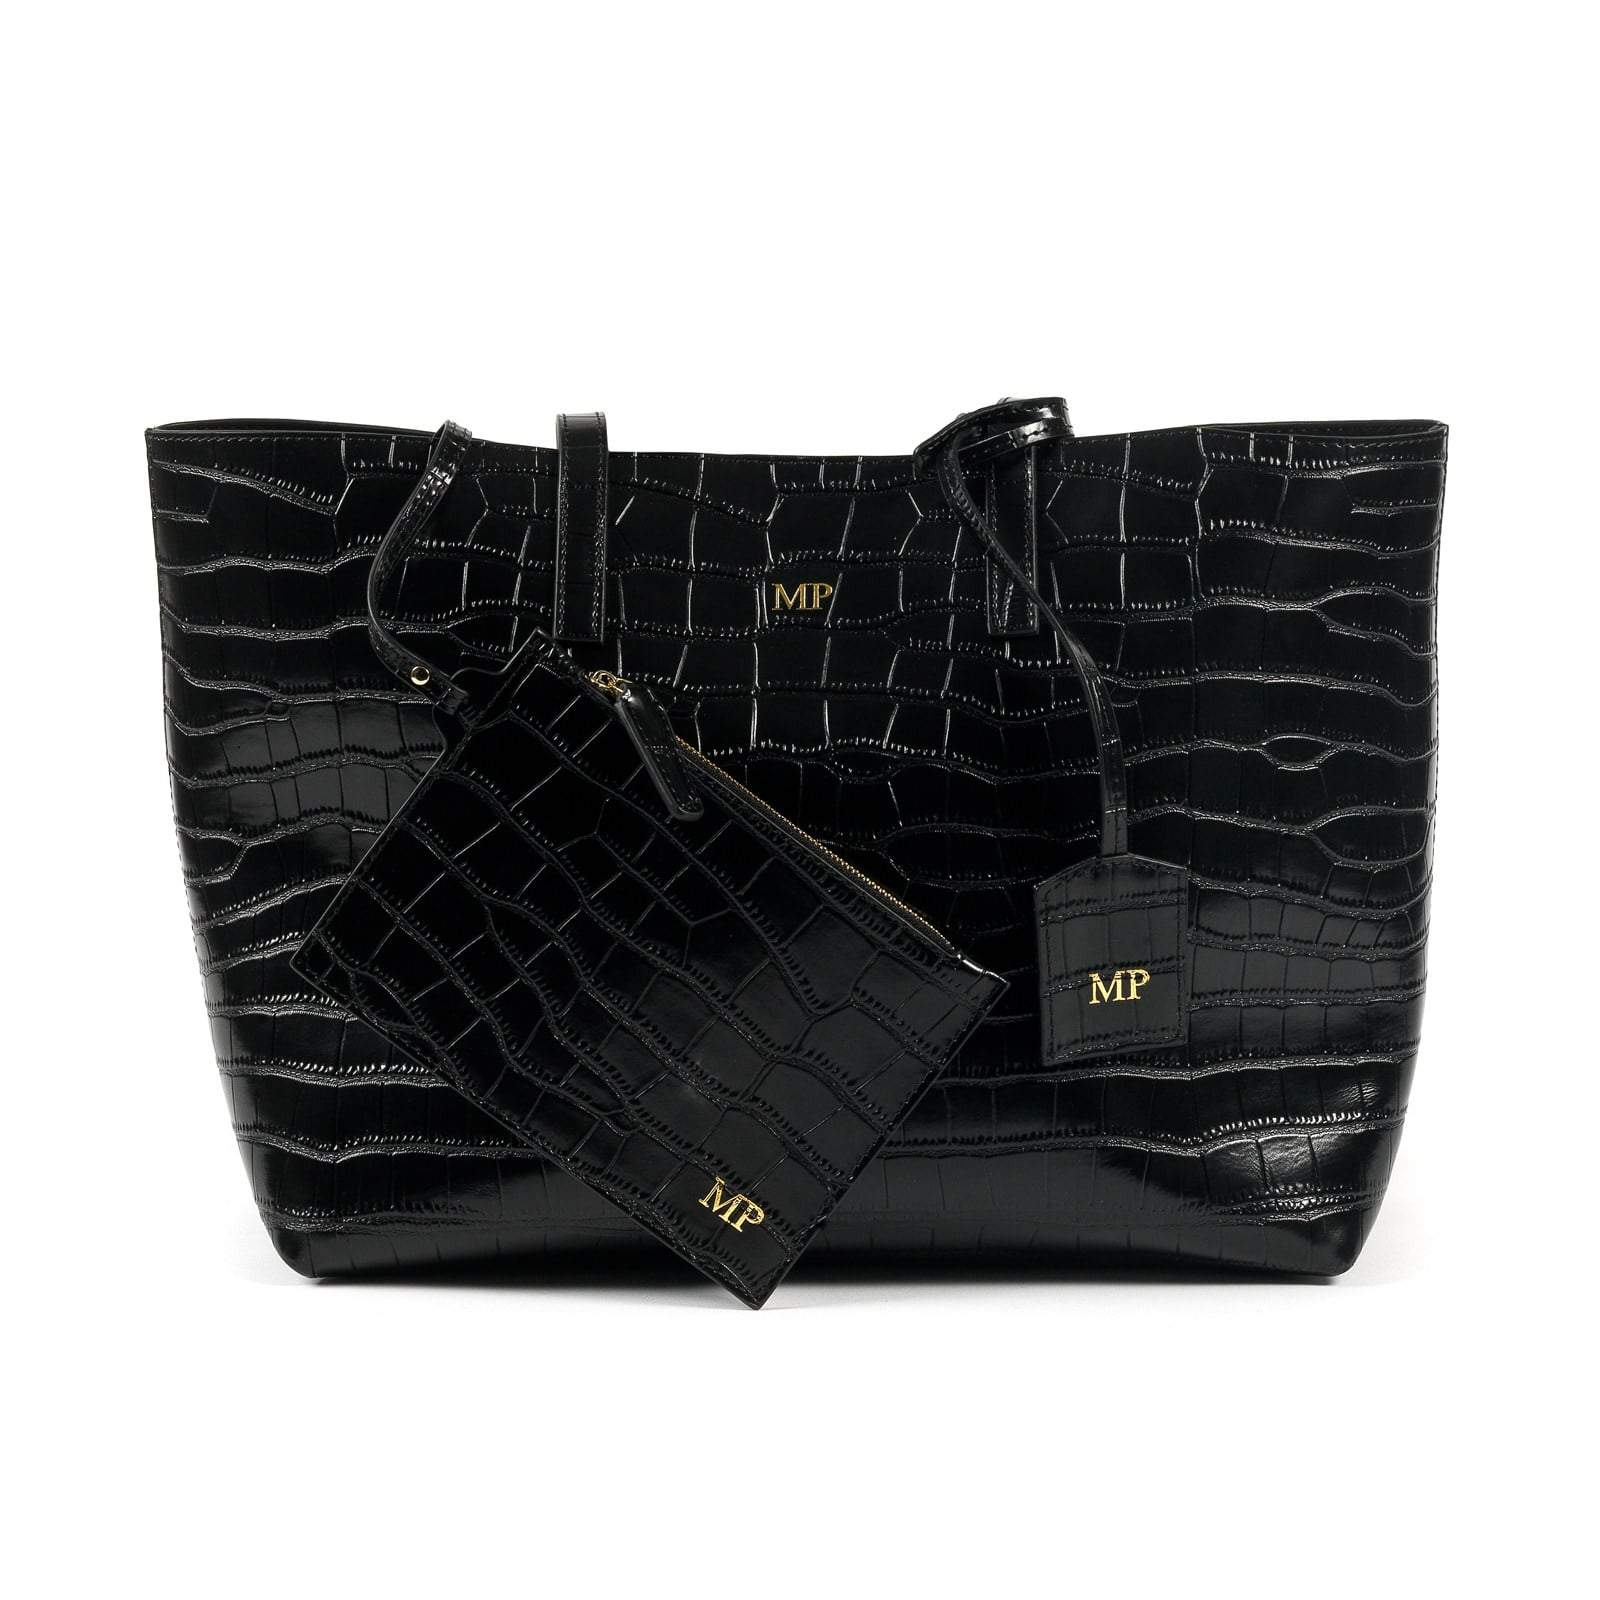 Personalised Black Croc Leather Tote with attached zipper pouch